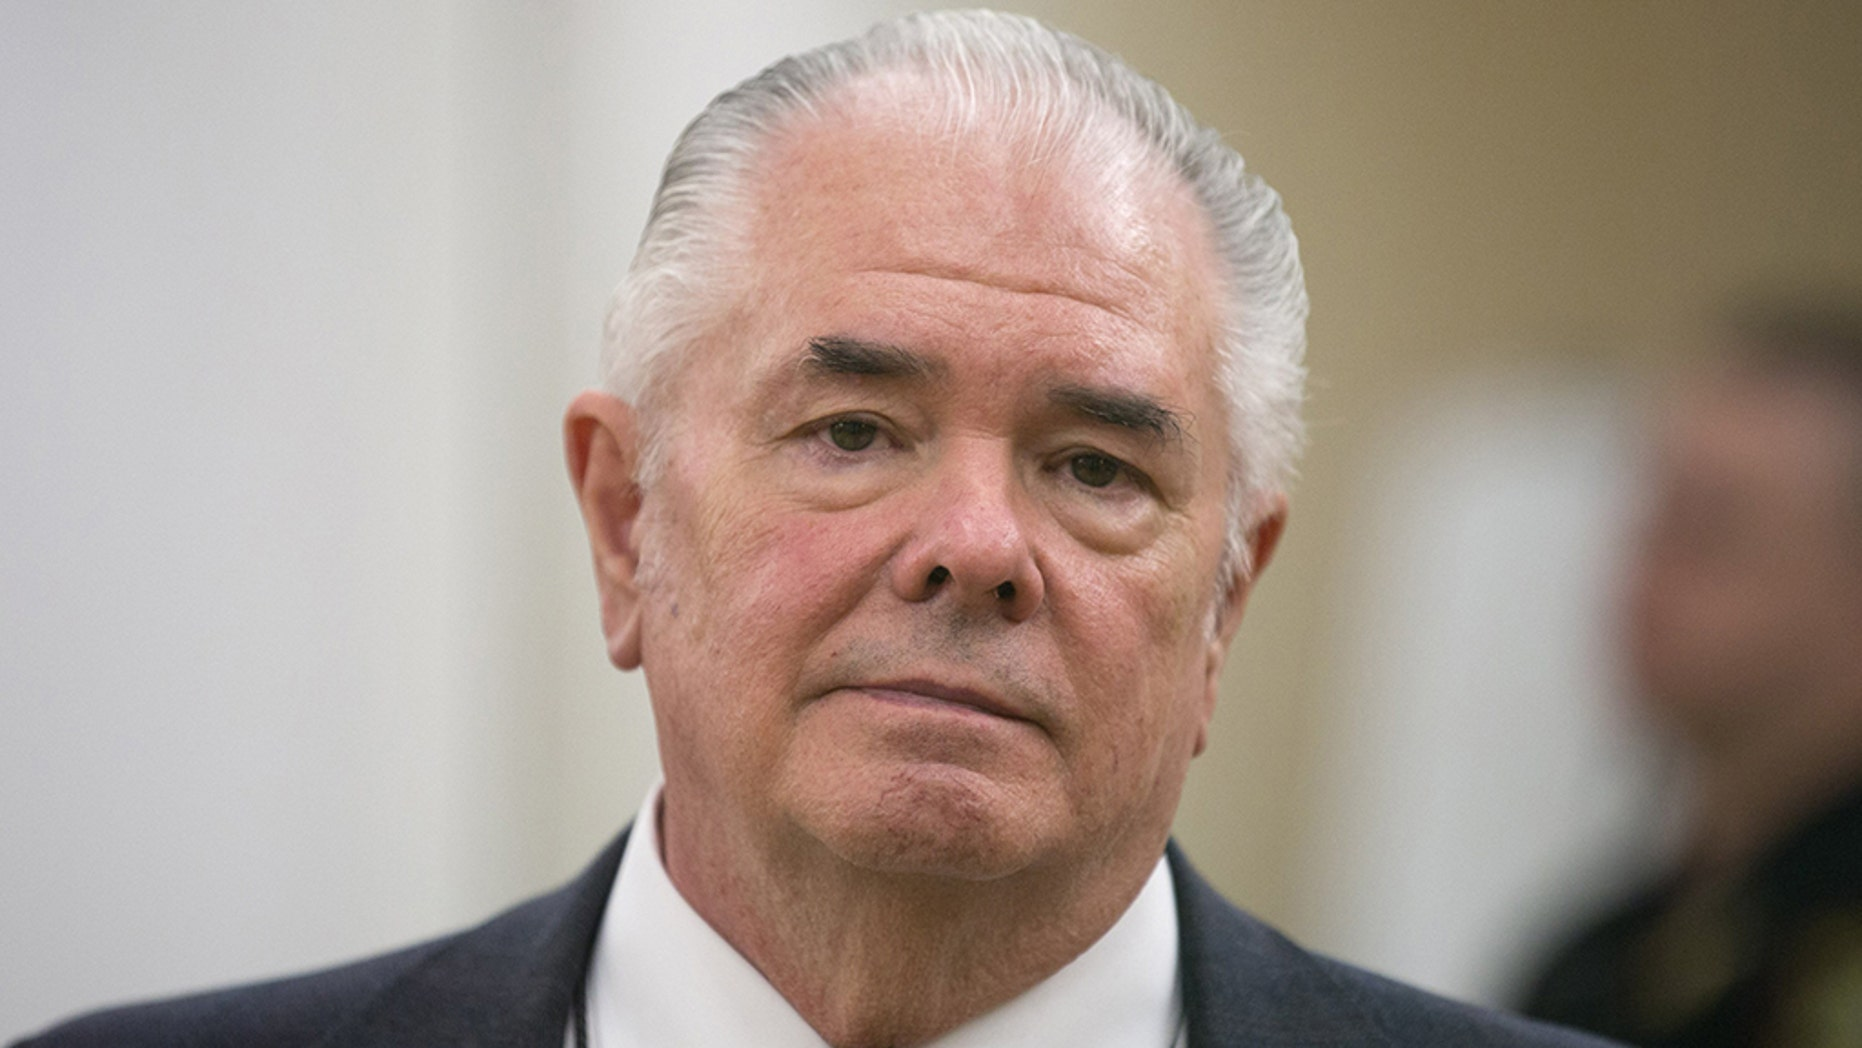 The box of Texas oilman Johnny Patton Jr. is explored in a new docuseries on Oxygen patrician Killer Affair. (Credit Image: © Joyce Marshall/TNS around ZUMA Wire)